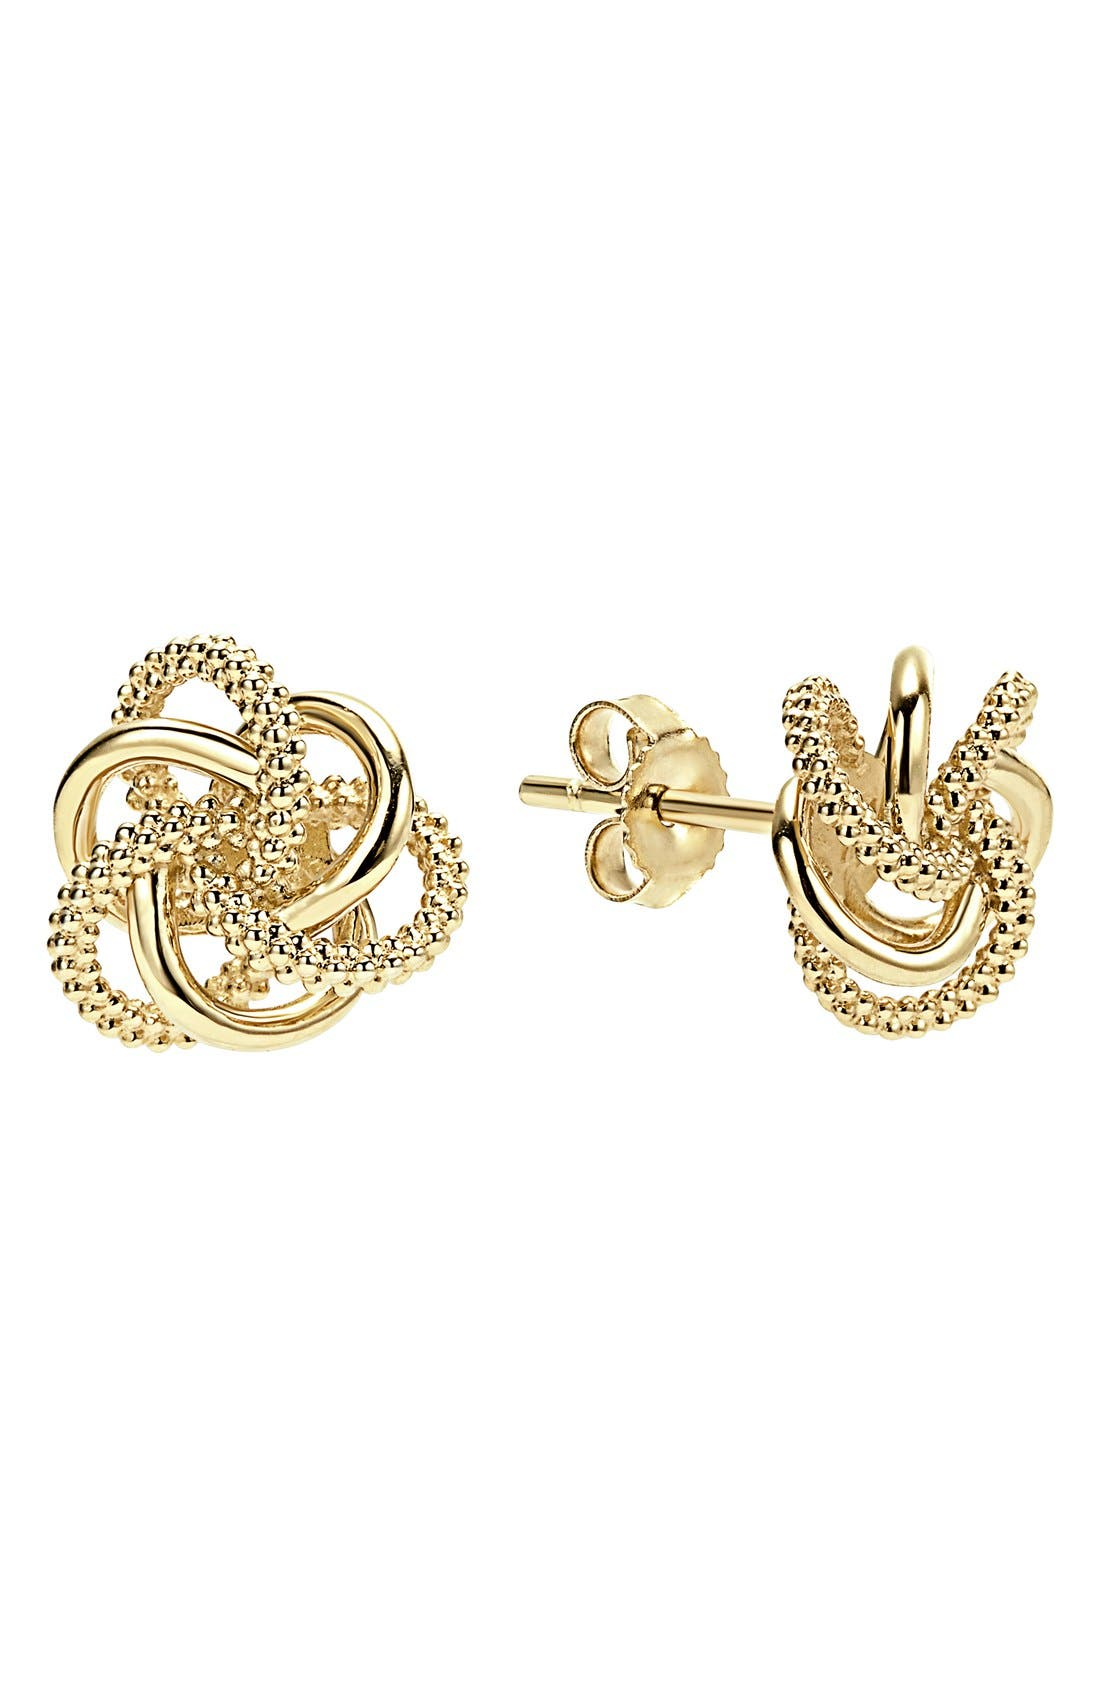 'Love Knot' 18k Gold Stud Earrings,                             Main thumbnail 1, color,                             Gold